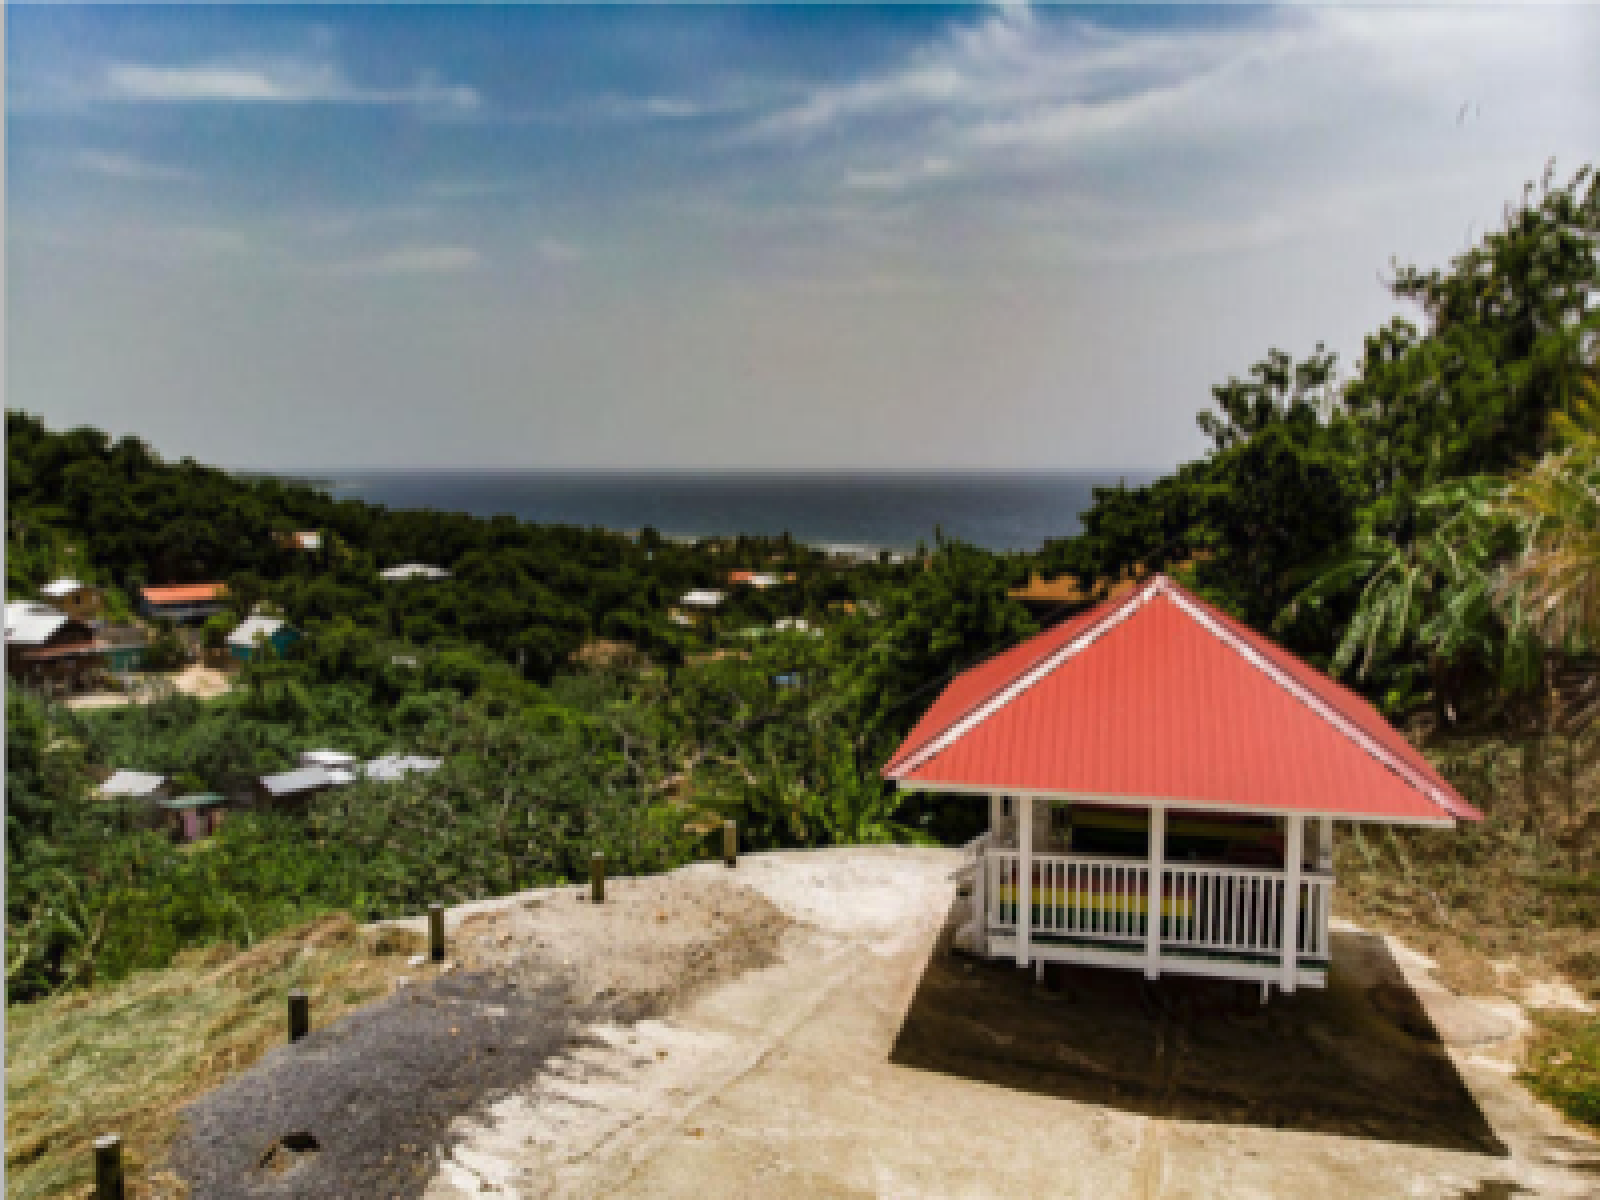 Ocean Views Hilltop 4 Bedrooms 2 separate units Rental Potential Decks